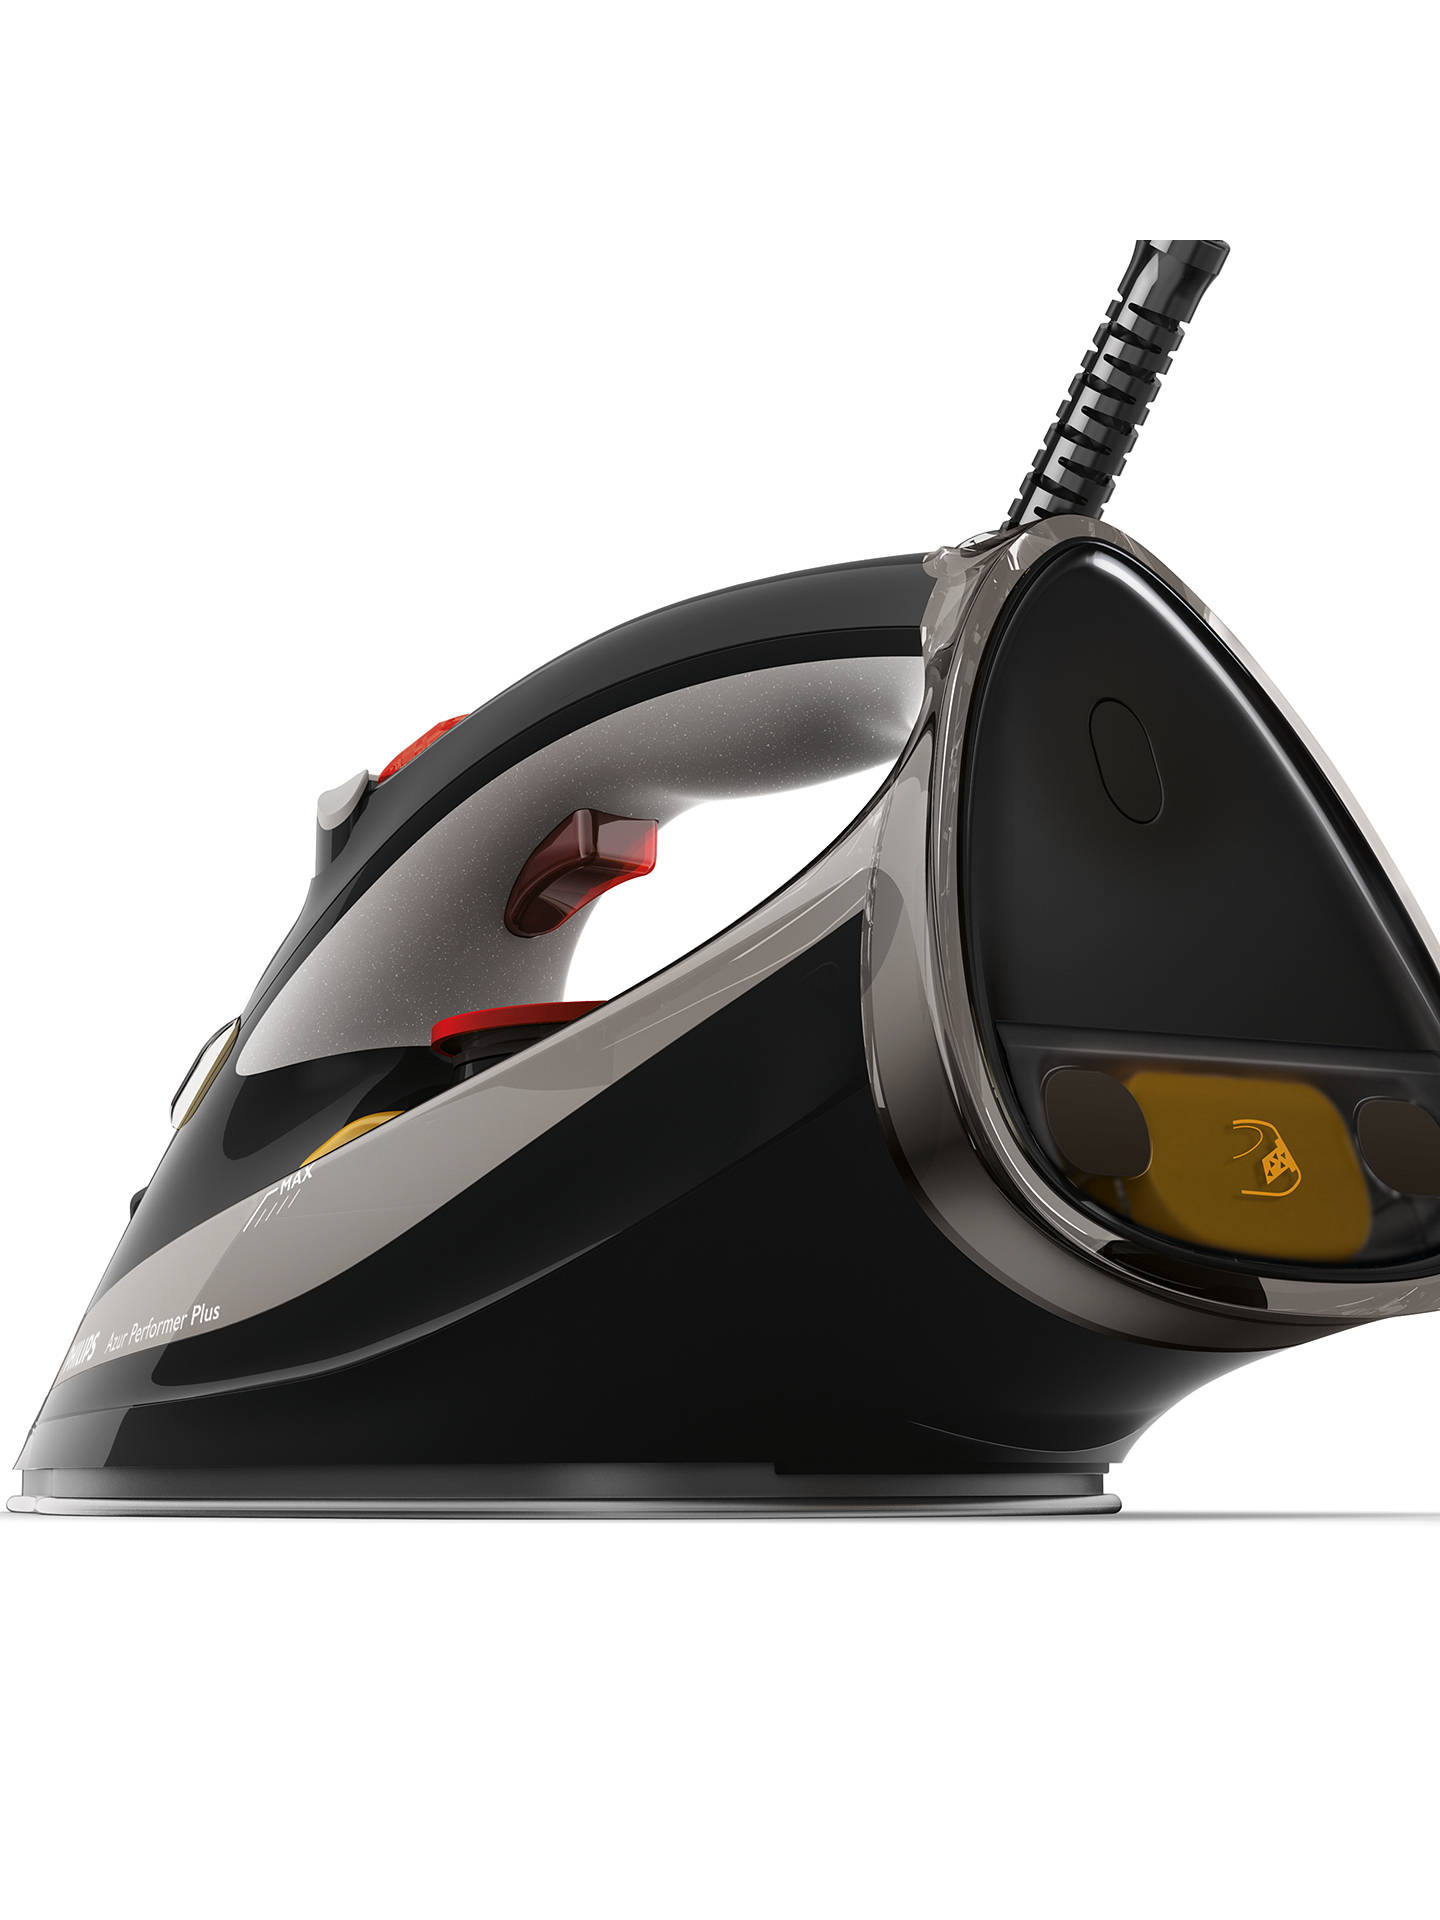 philips gc4526 87 azur plus performer steam iron black at. Black Bedroom Furniture Sets. Home Design Ideas